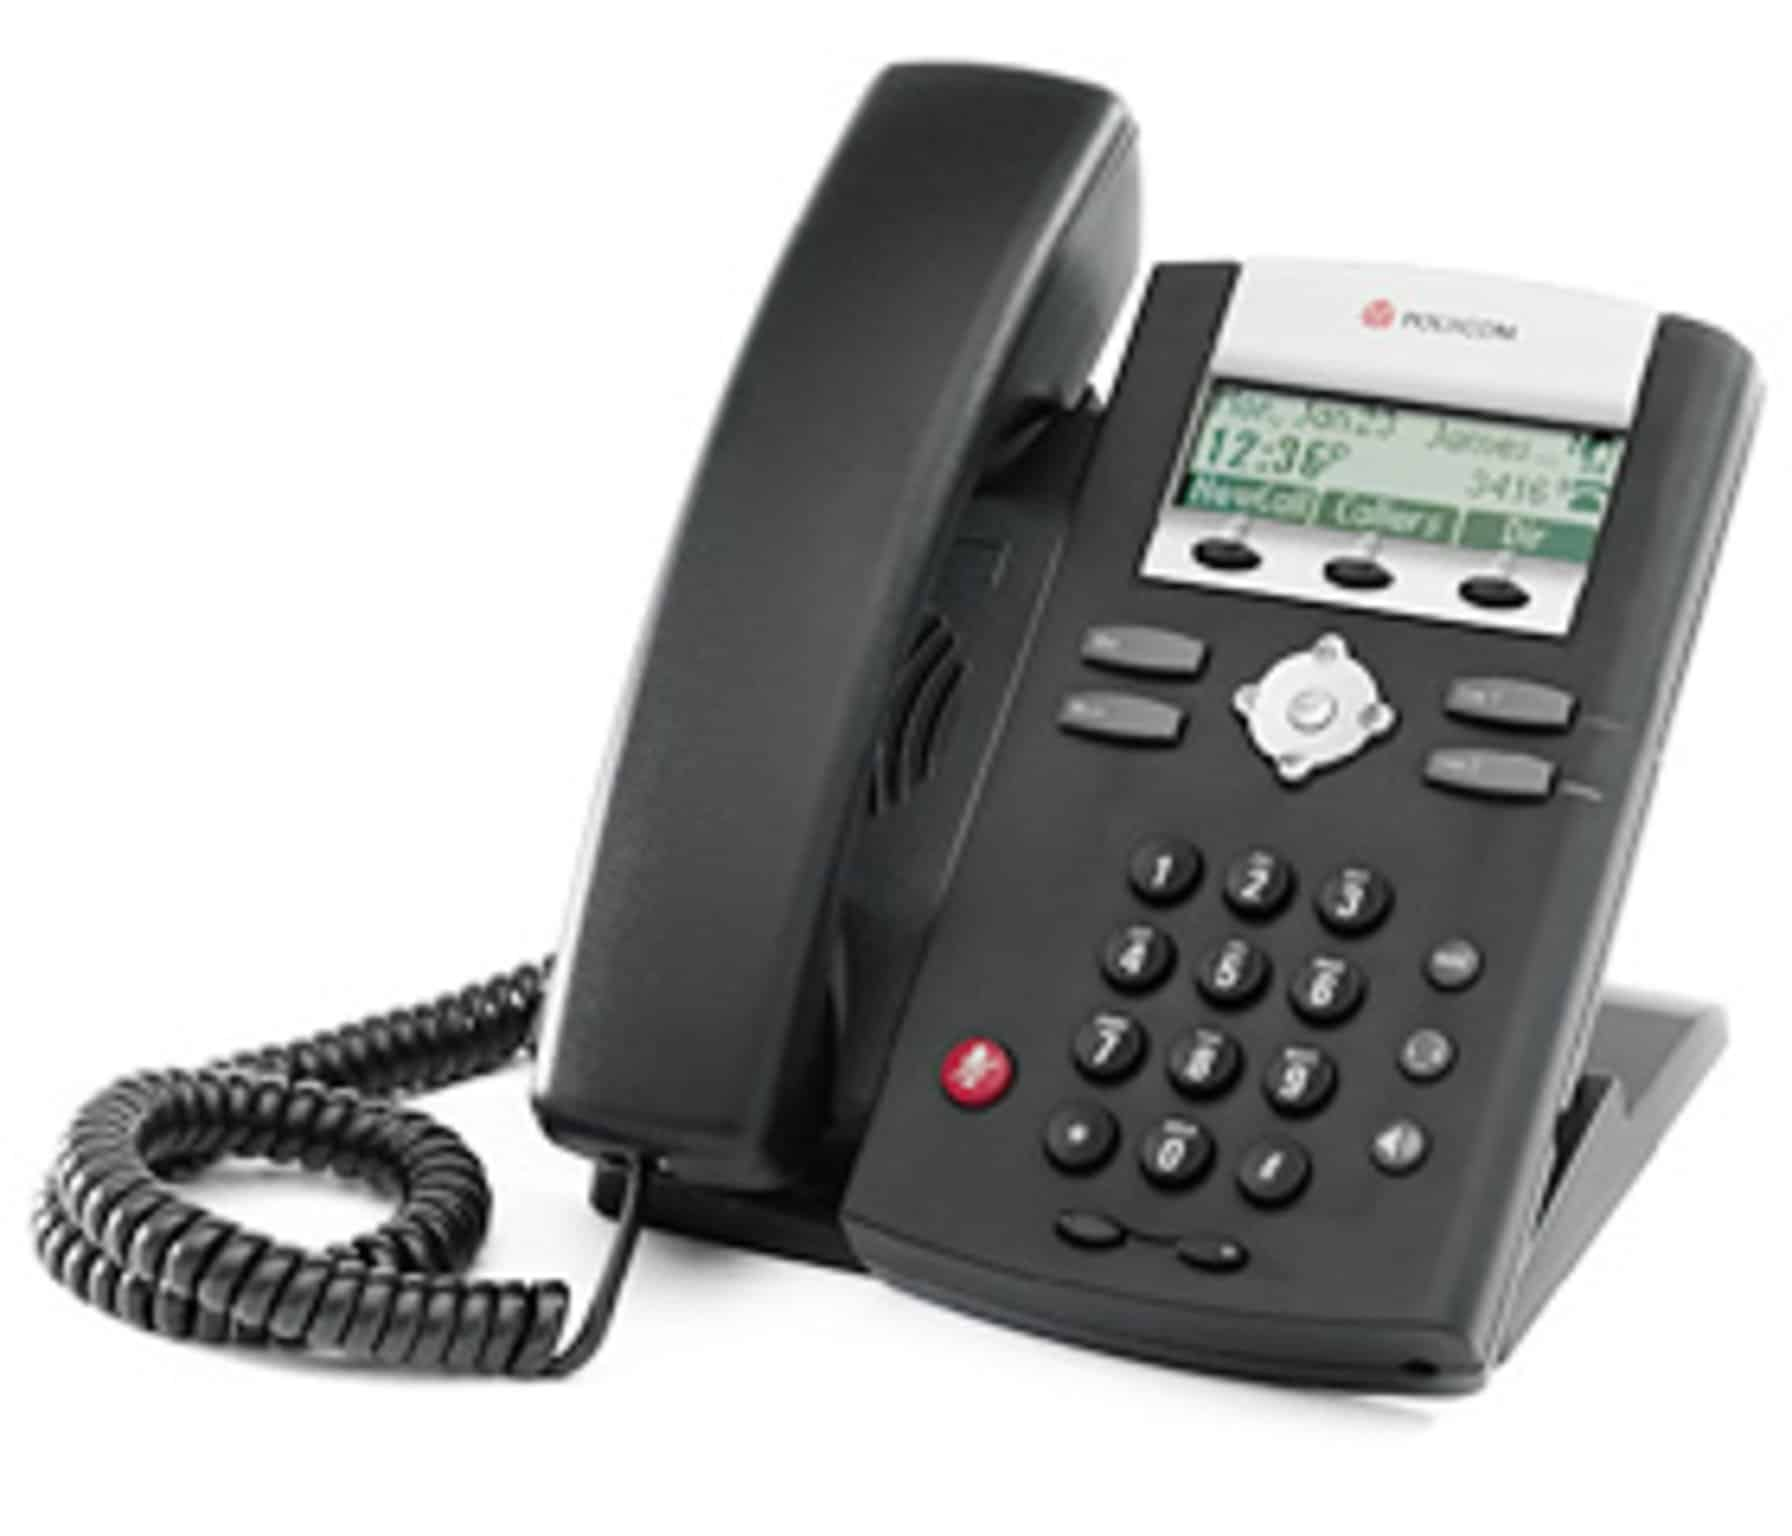 The Polycom IP 331 is a good entry level handset